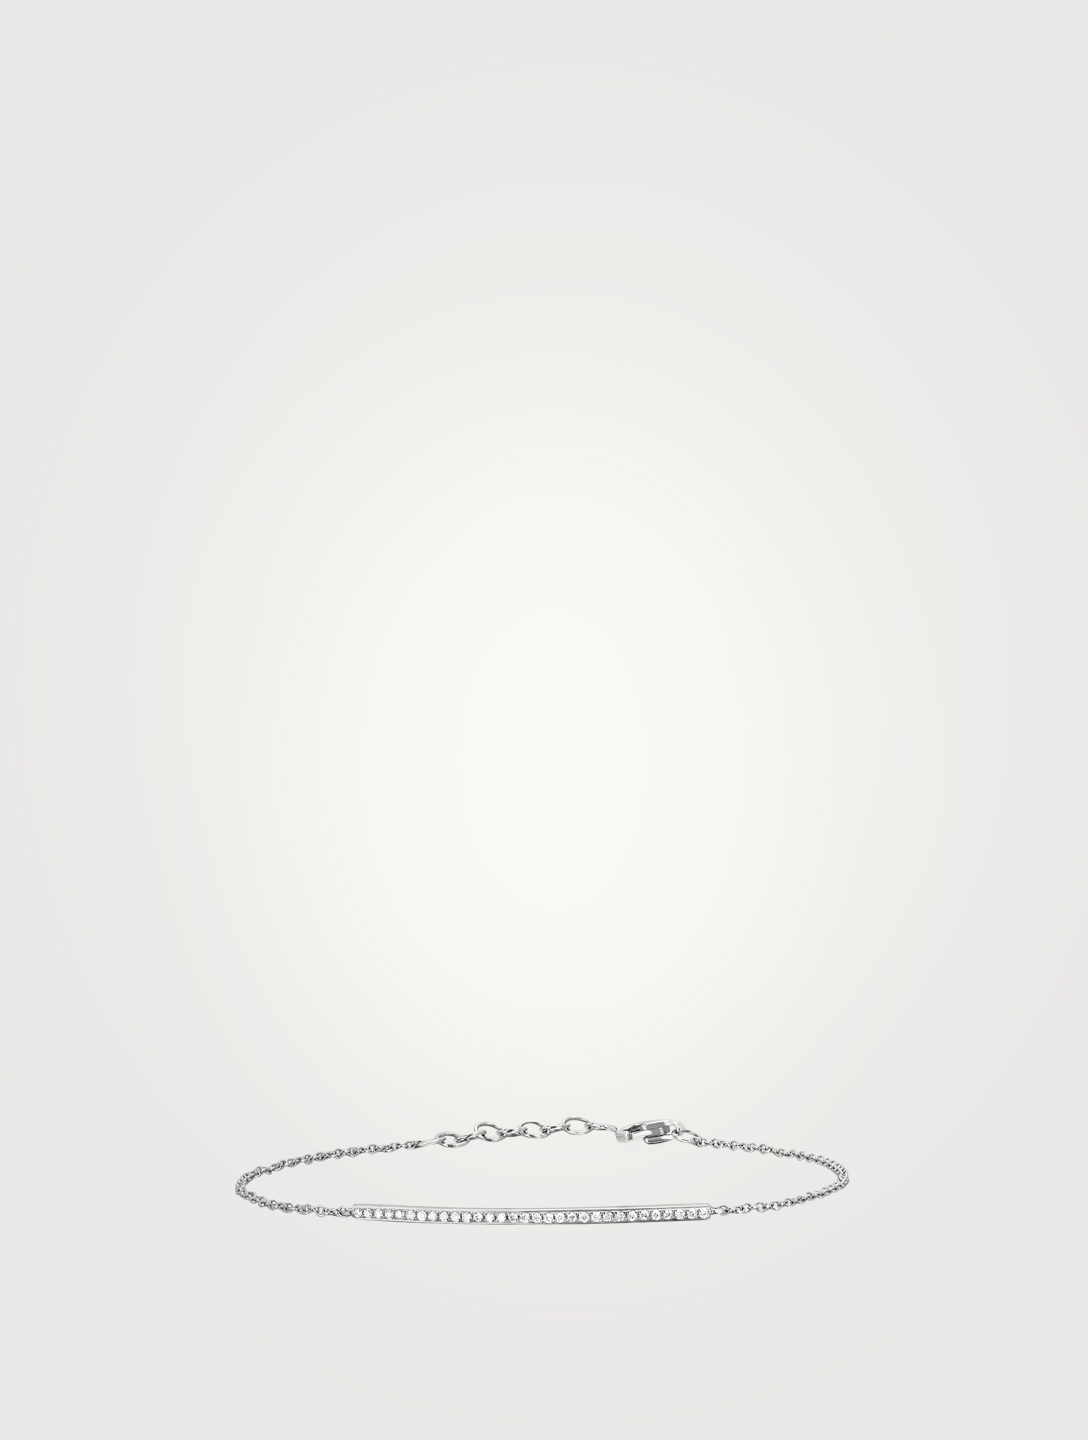 EF COLLECTION Bracelet à barre diamantée en or blanc 14 ct Femmes Métallique